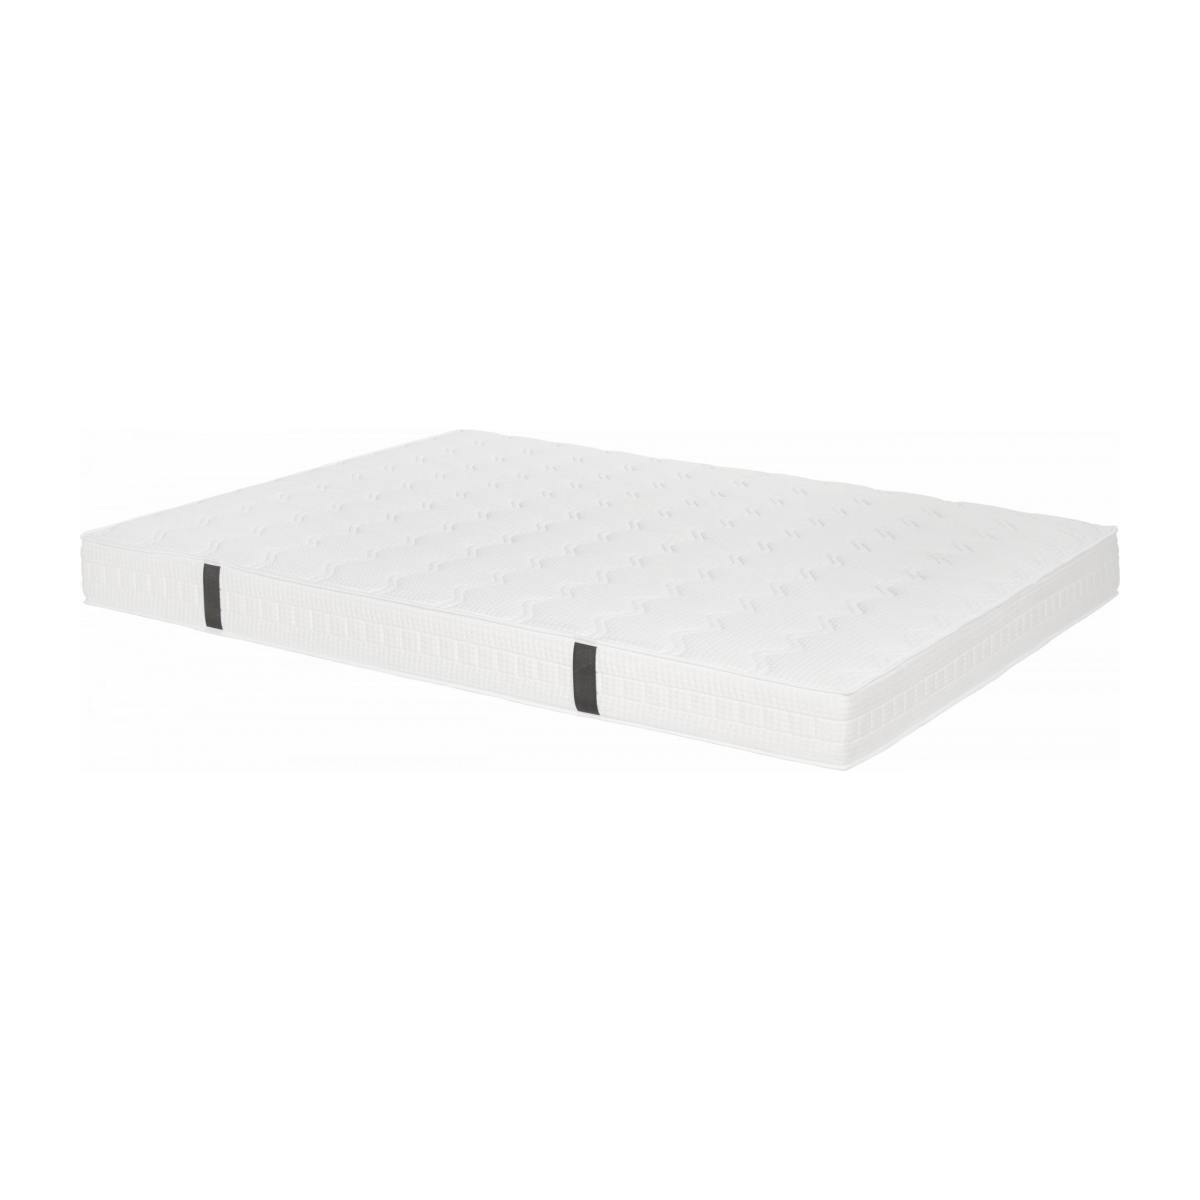 Foam mattress, width 18cm, 140x200cm - firm support n°1